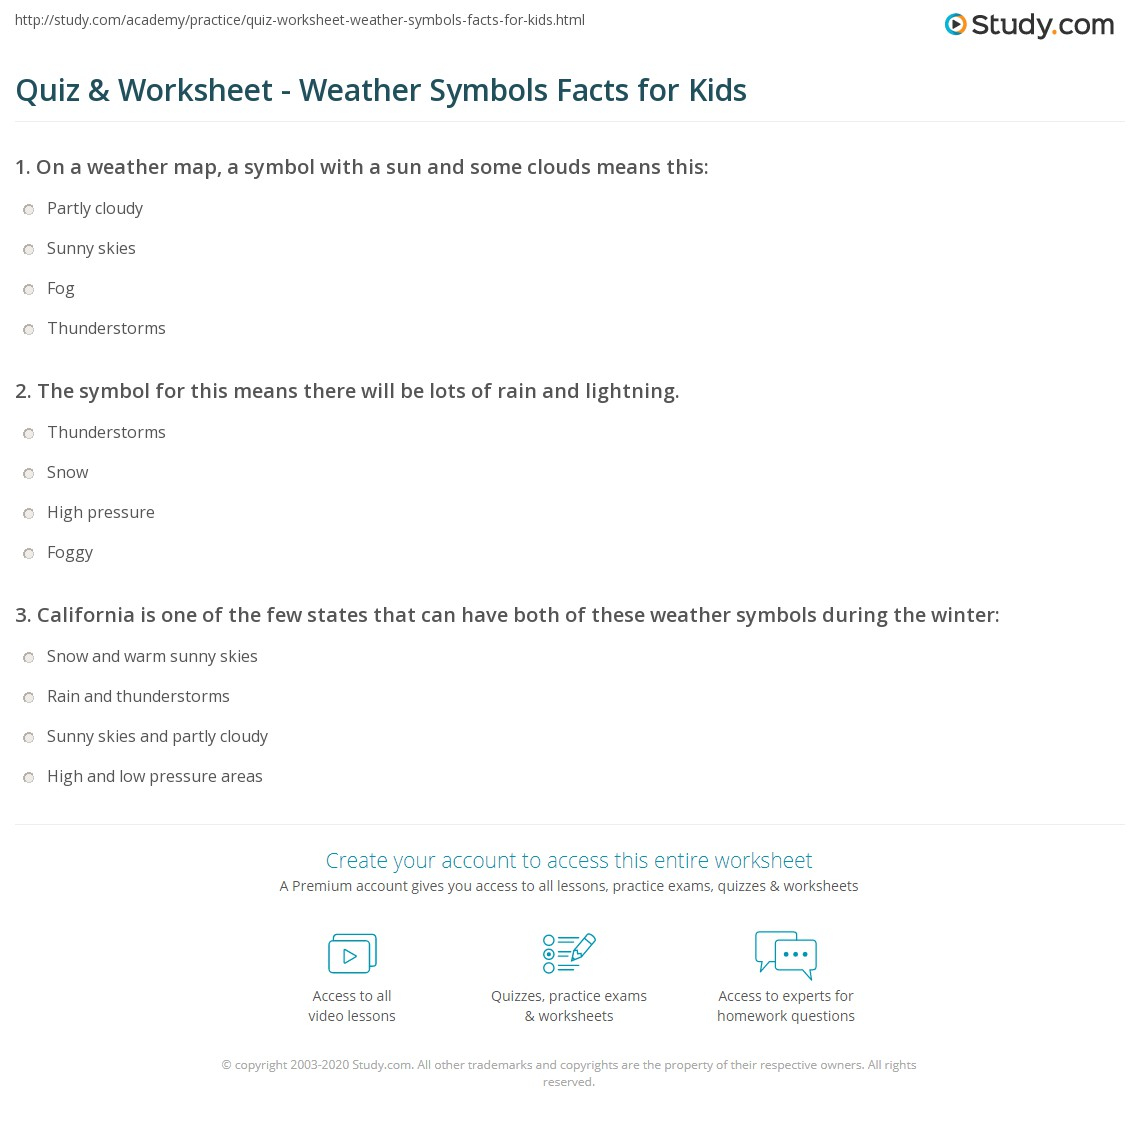 Quiz Worksheet Weather Symbols Facts For Kids Study